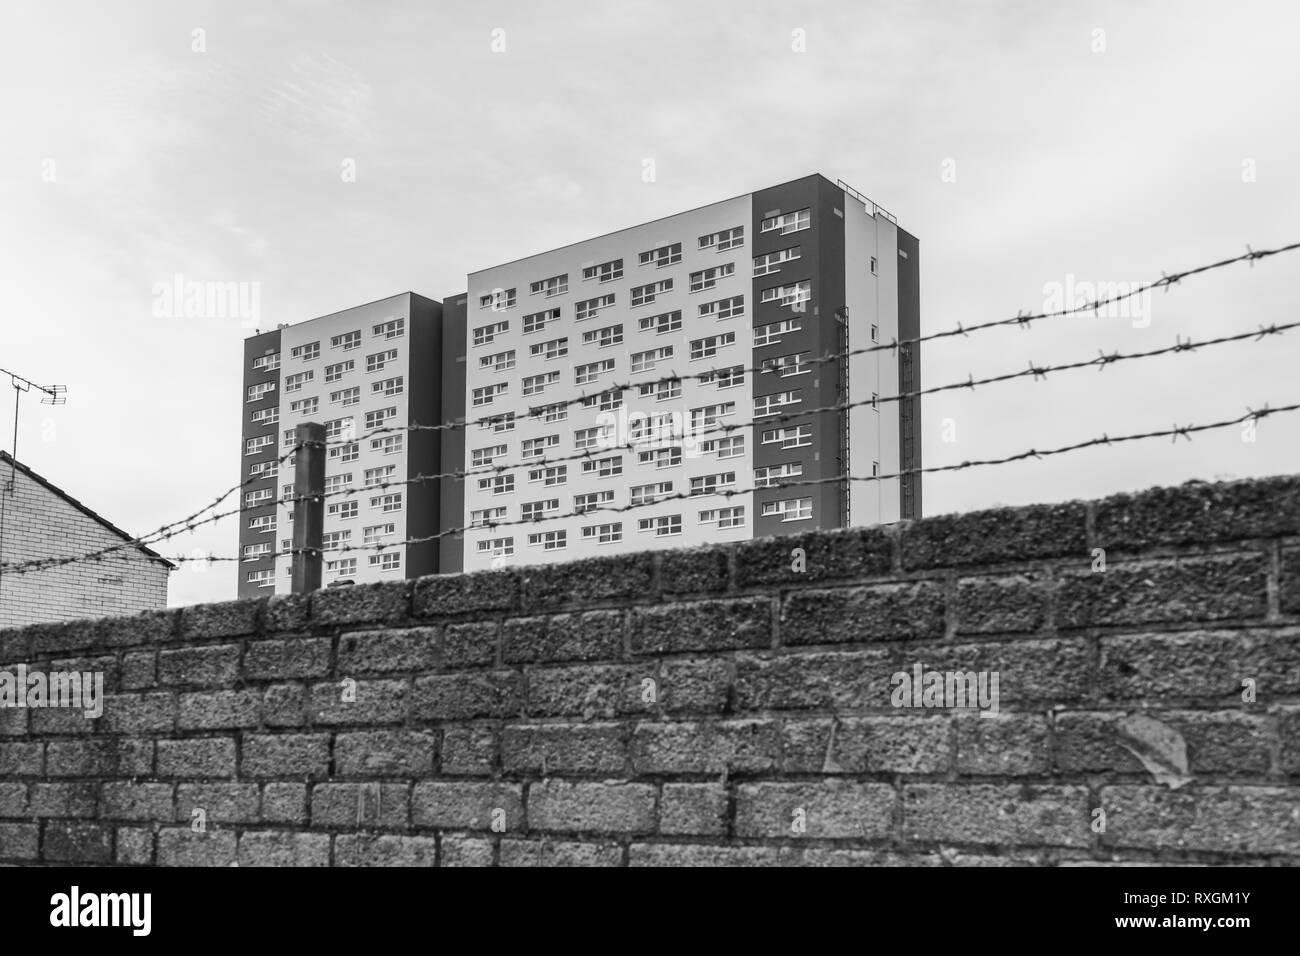 Monochrome of Shirley Towers a residential council owned concrete tower block seen through barbed wire, Shirley district, Southampton, England, UK - Stock Image